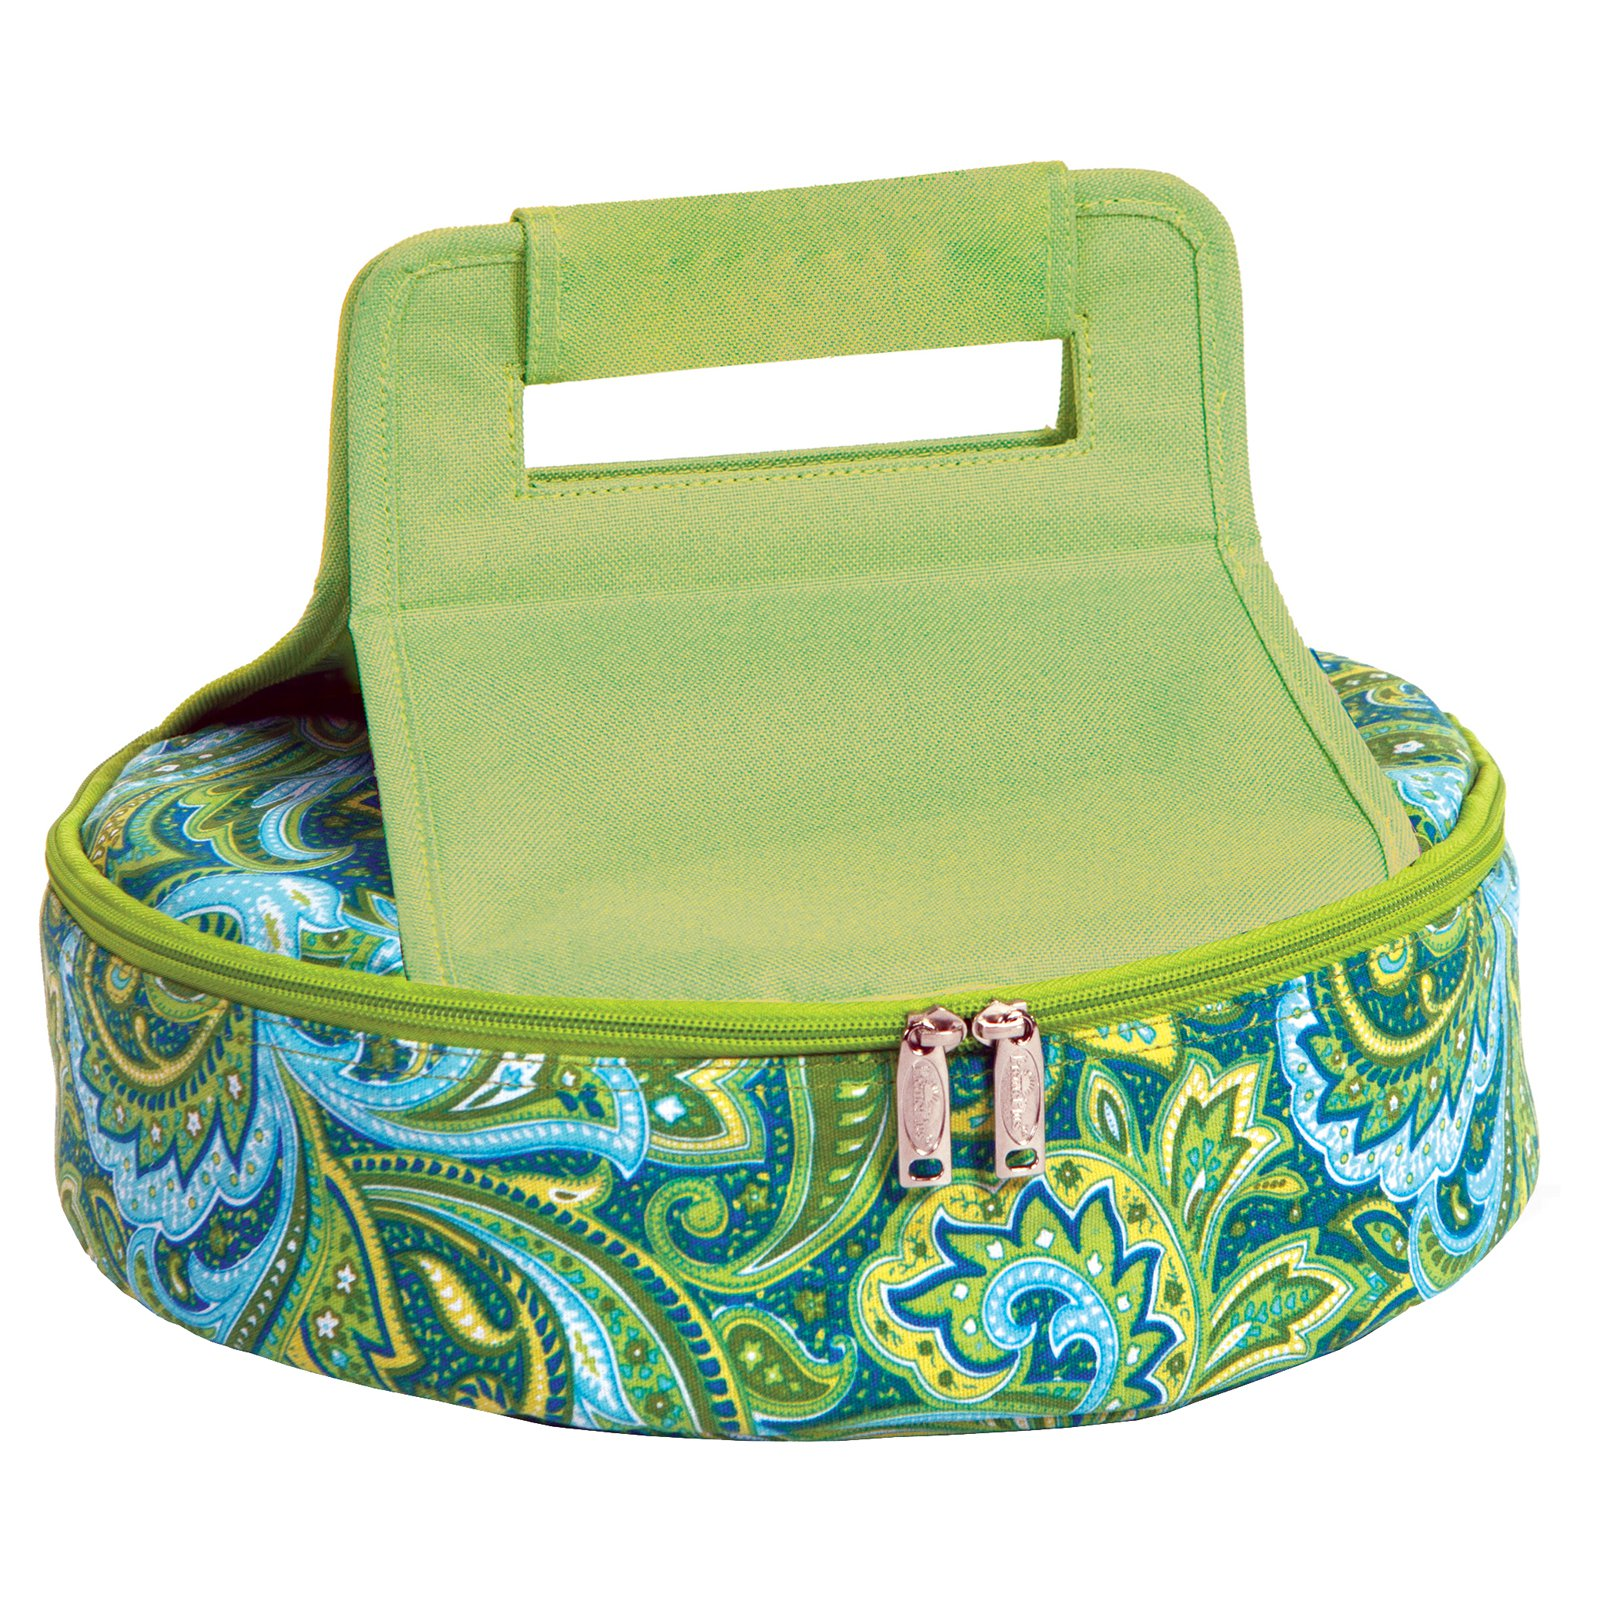 Picnic Plus Cake and Carry Green Paisley Cooler